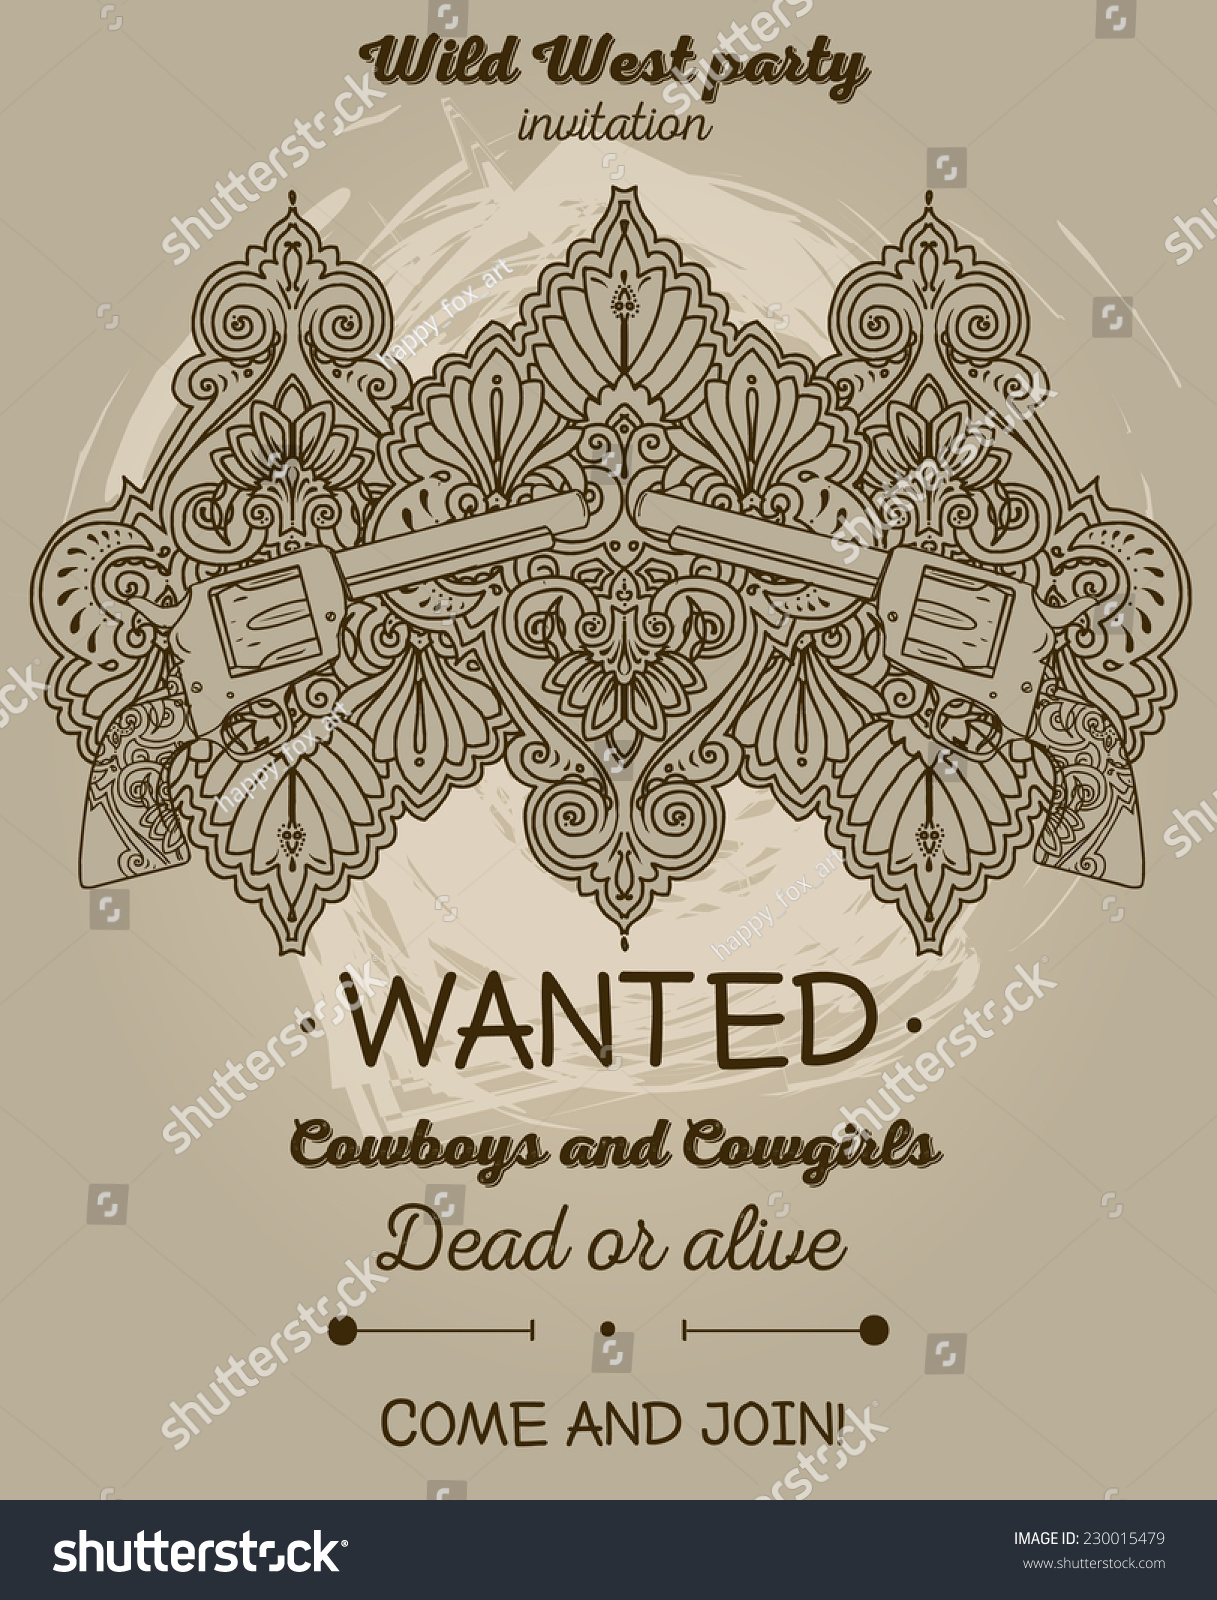 Wanted Poster Wild West Party Invitation Stock Vector 230015479 ...